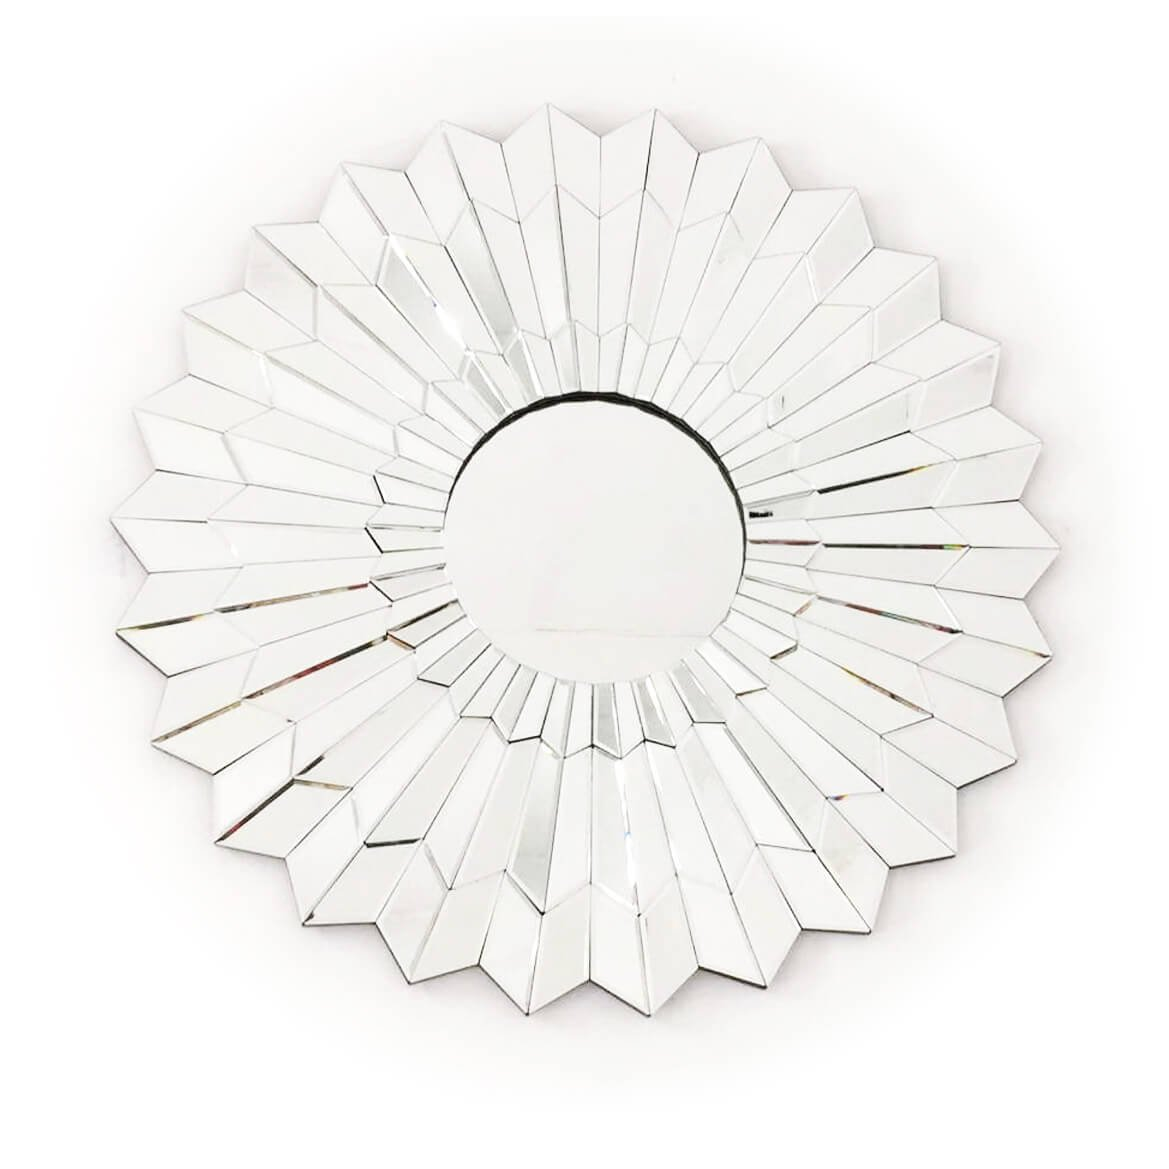 Fab Glass and Mirror FAB-WSTC018 Decorative Sunburst, Bathroom Wall